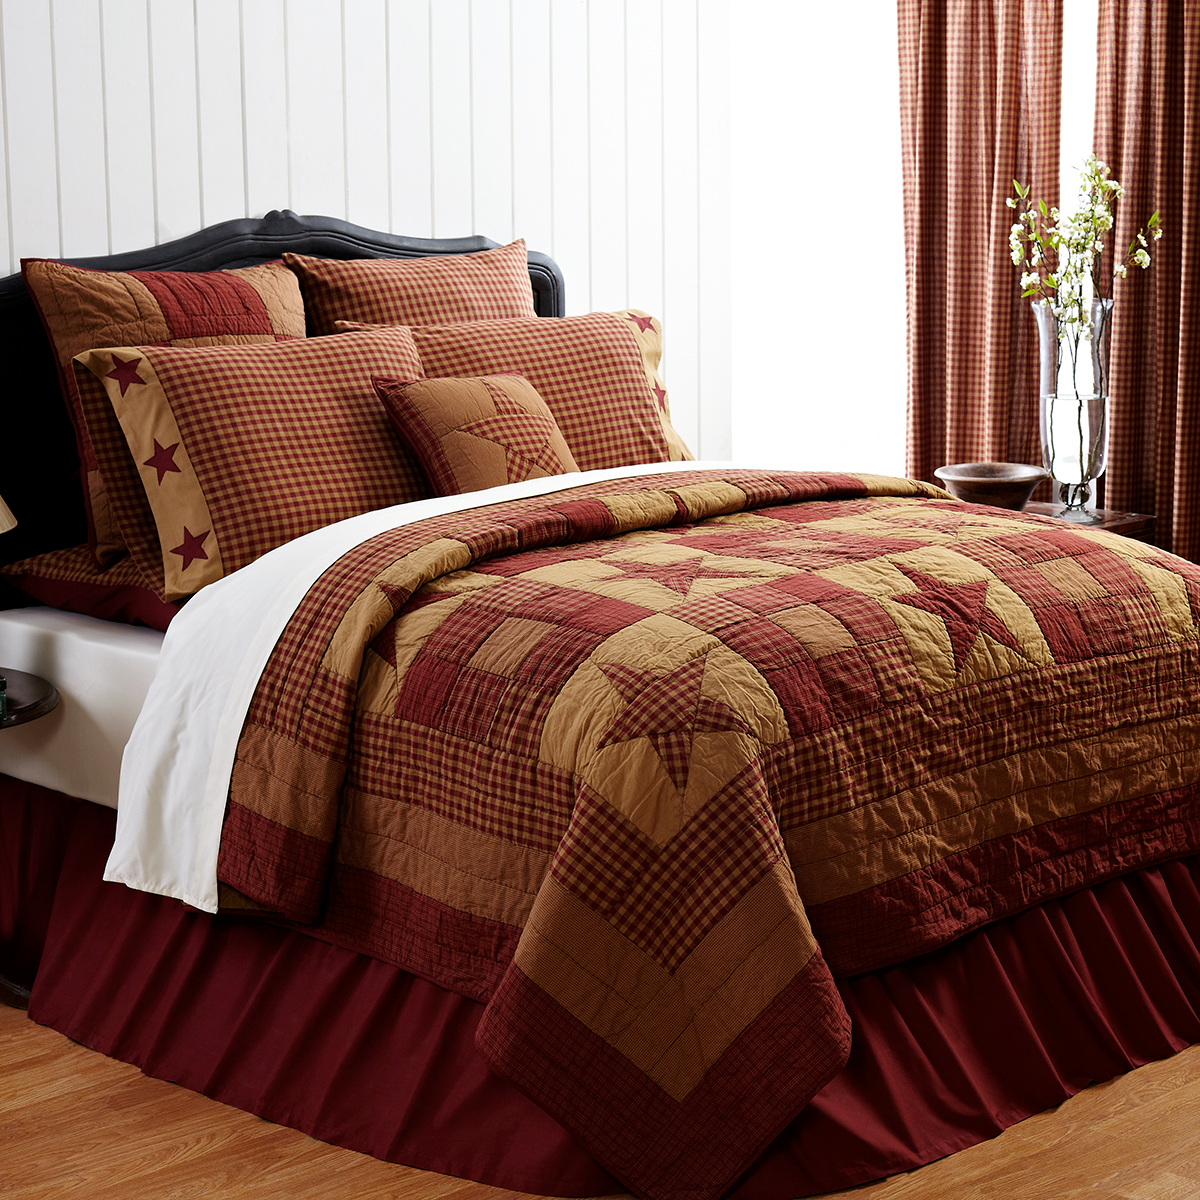 4-pc King Classic Ninepatch Star Quilt Set - King Quilted Shams - VHC Brands